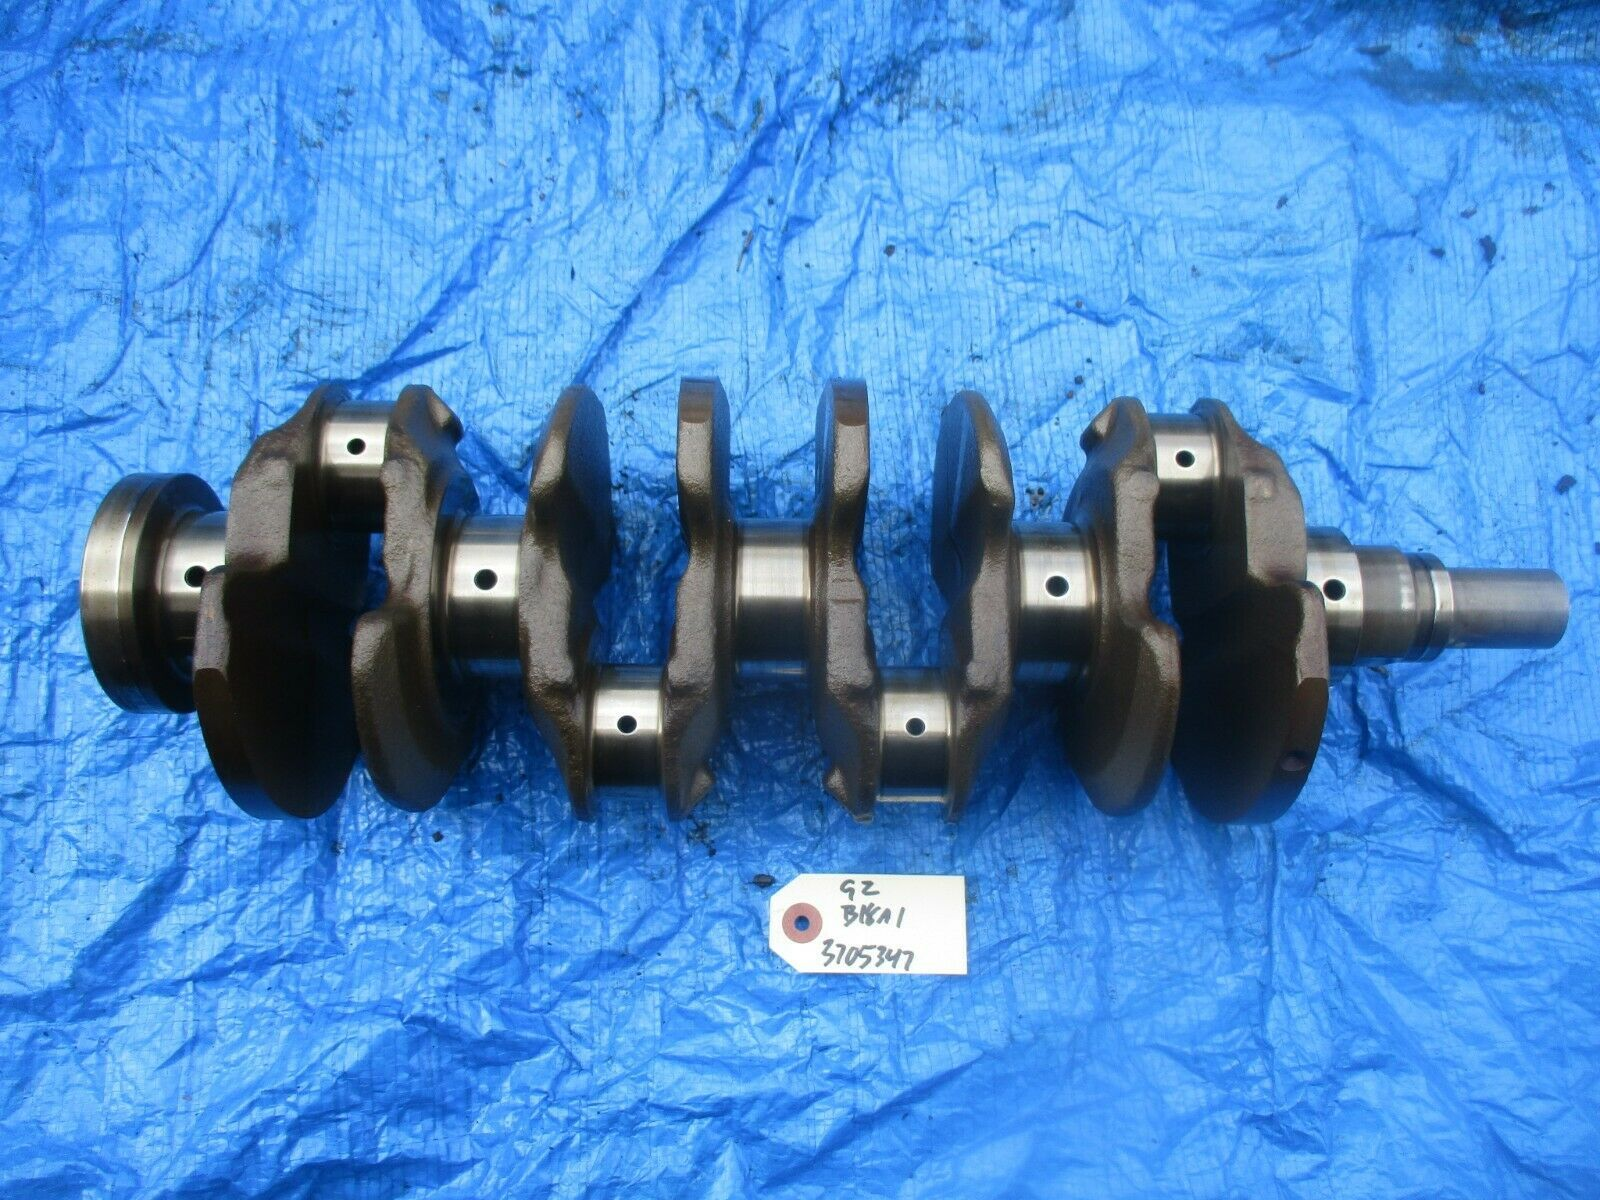 Primary image for 90-93 Acura Integra LS B18A1 crankshaft assembly OEM engine motor B18